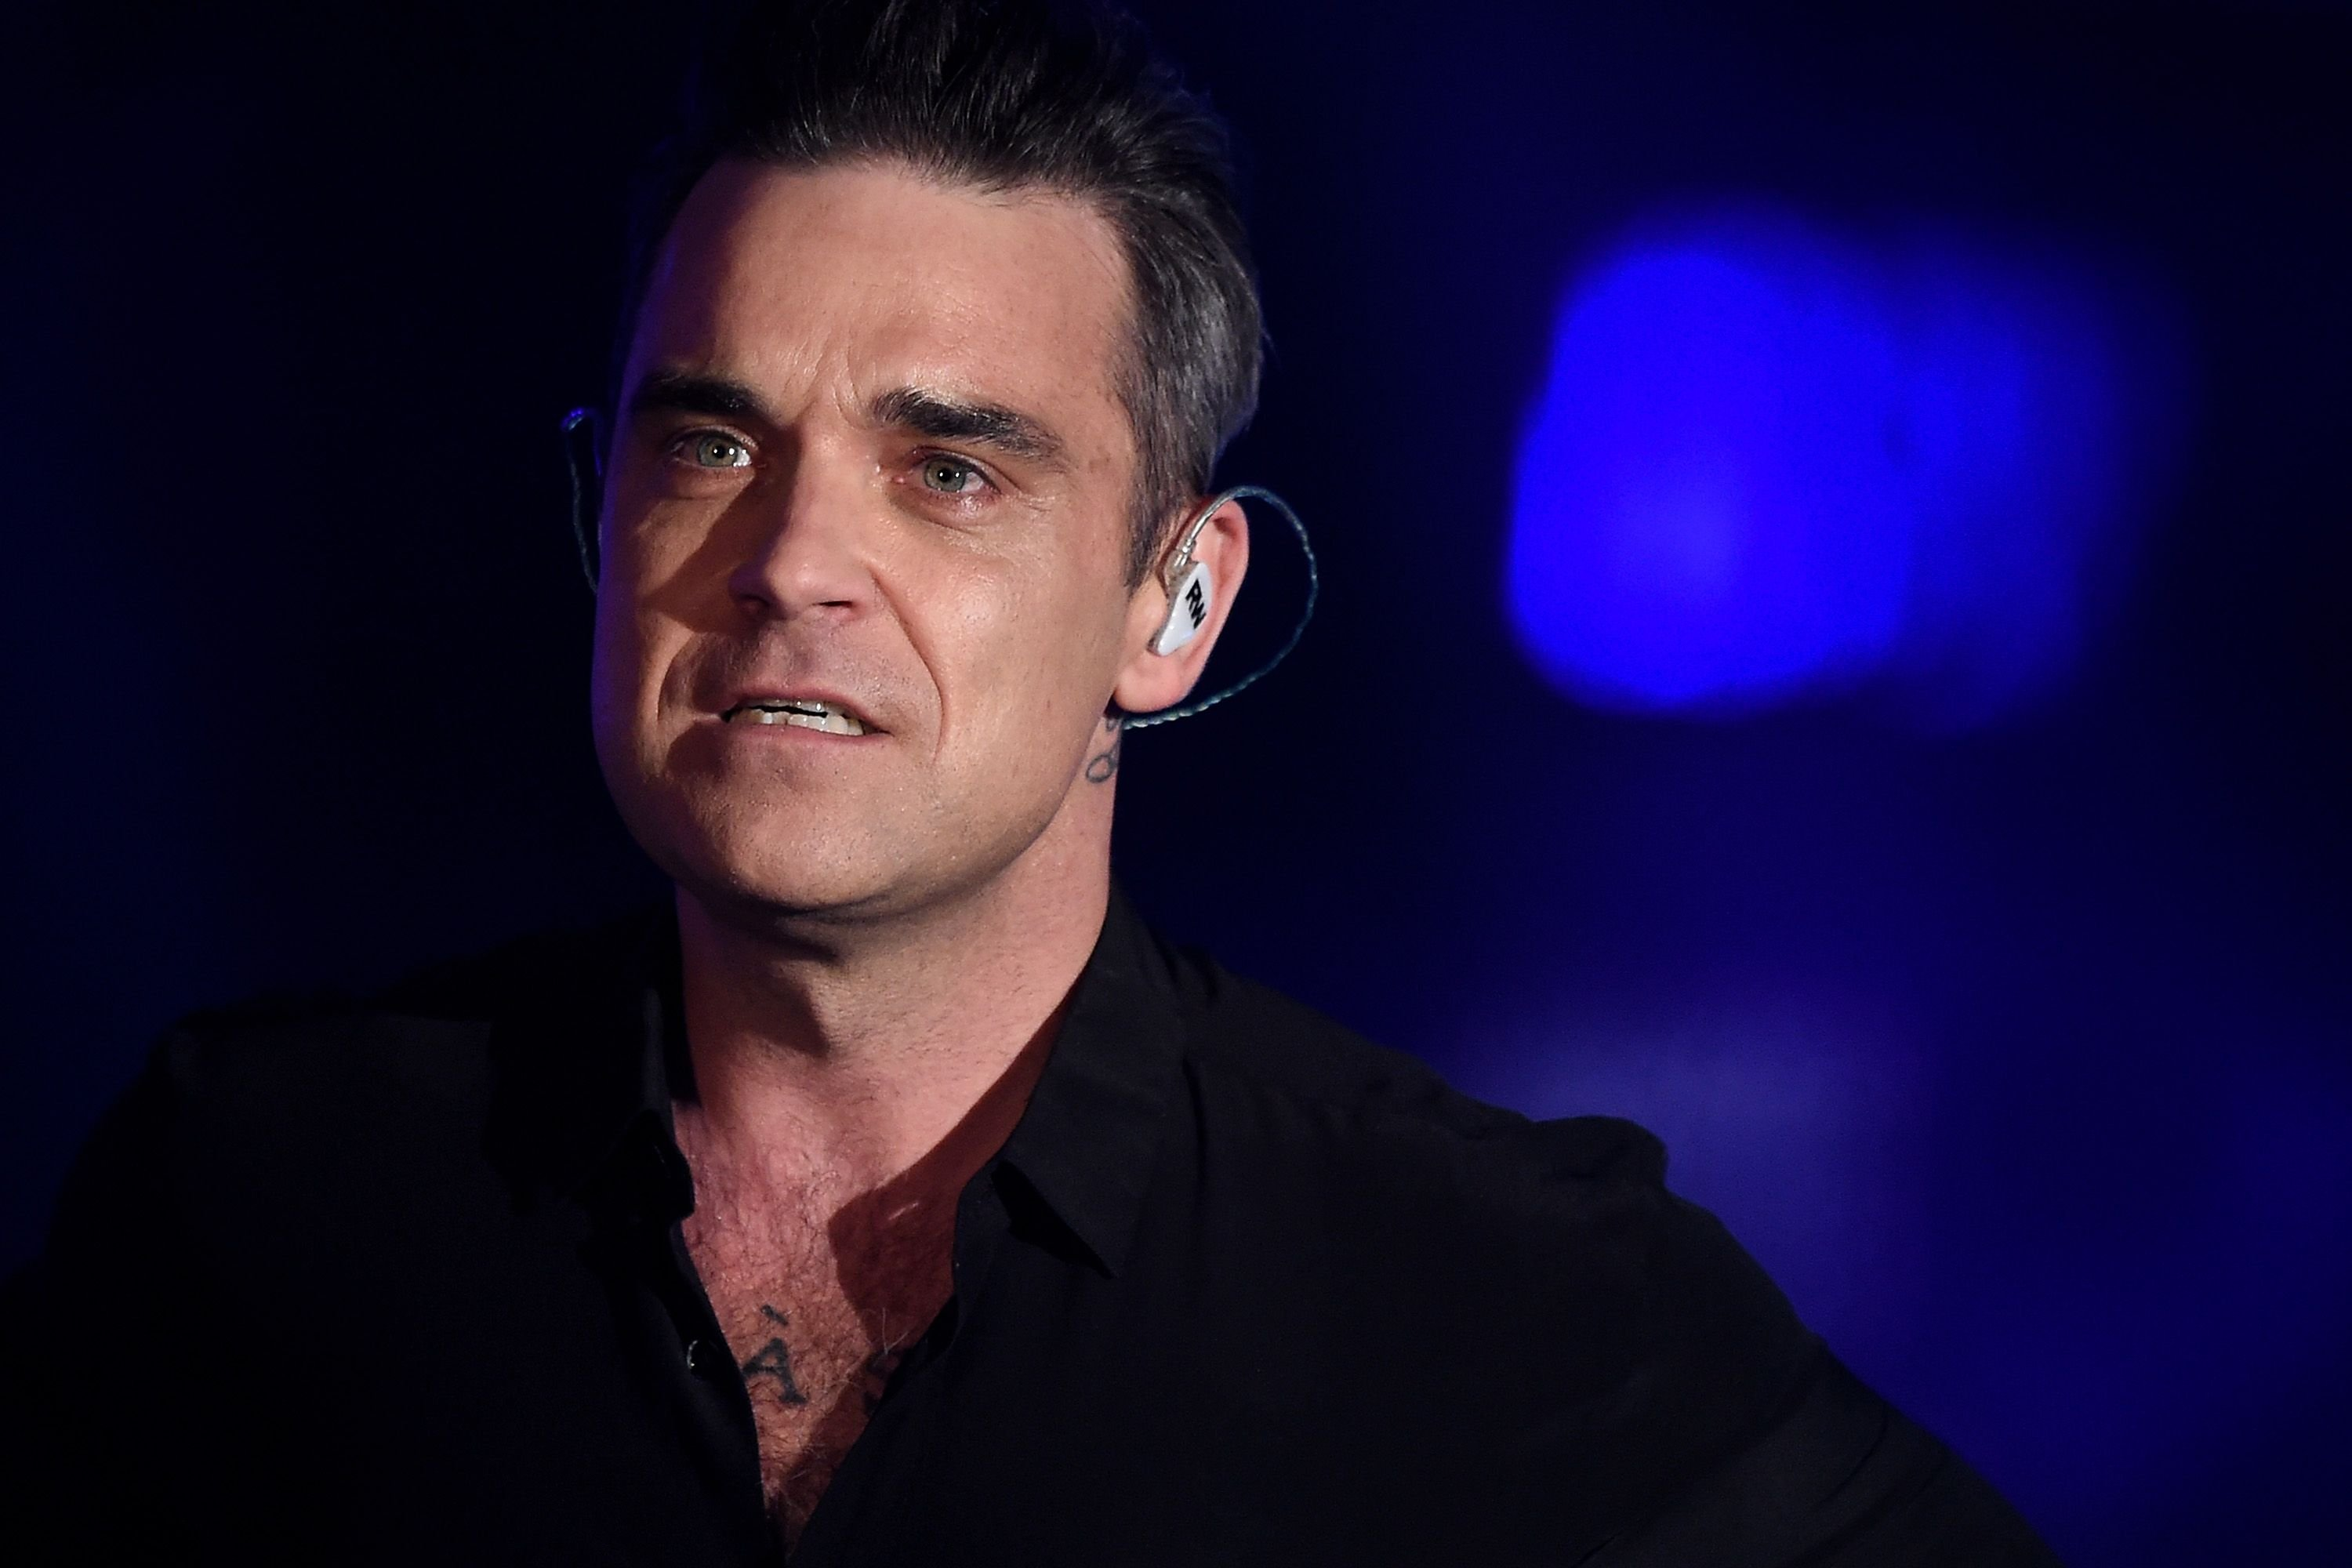 Robbie Williams attends the television show 2016! Menschen, Bilder, Emotionen - RTL Jahresrueckblick. | Source: Getty Images